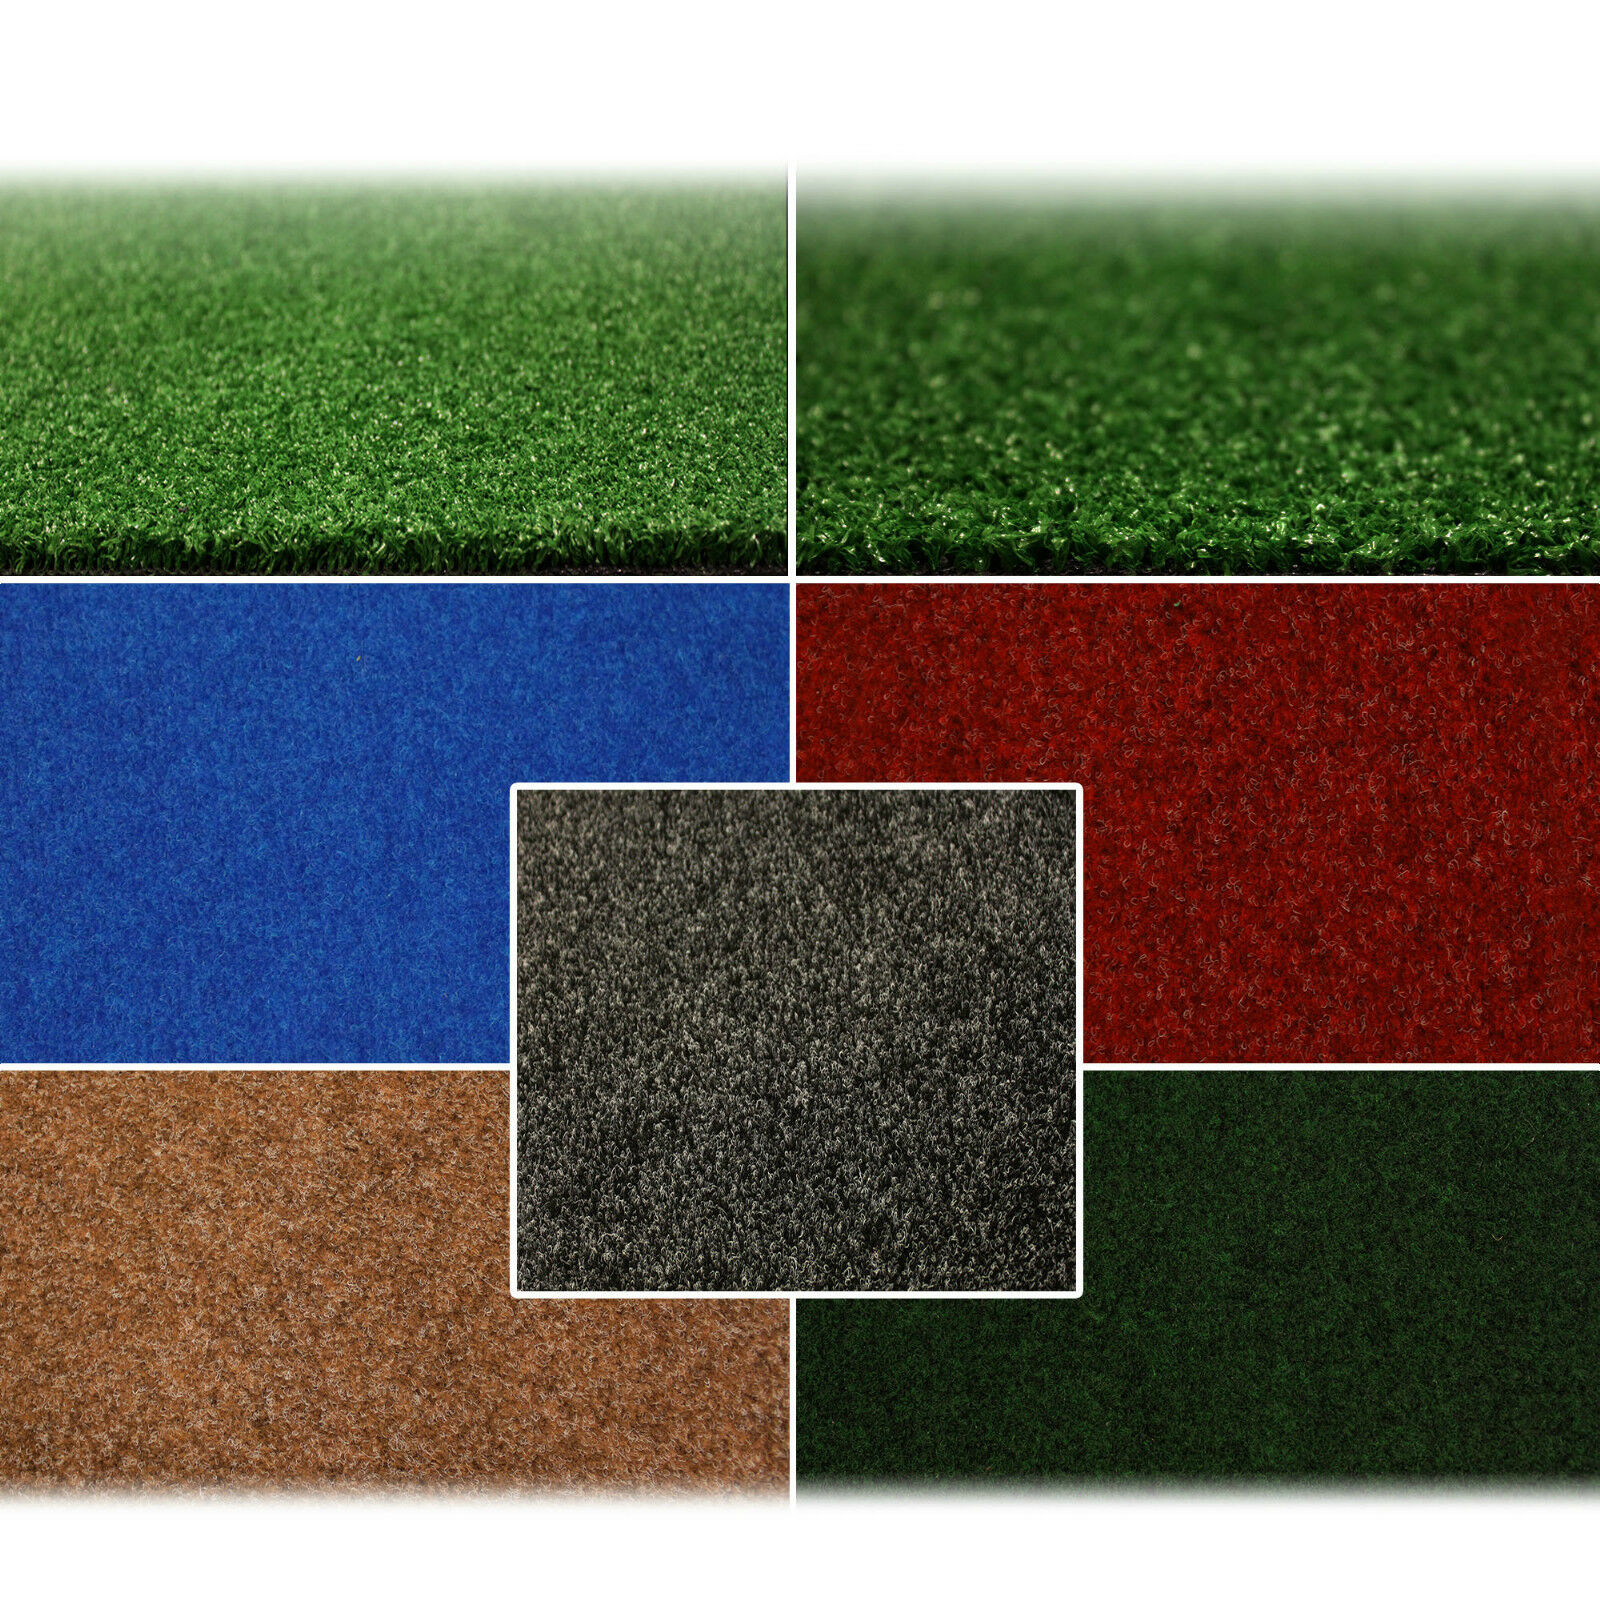 Outdoor flooring artificial grass carpet green blue for Grass carpet tiles